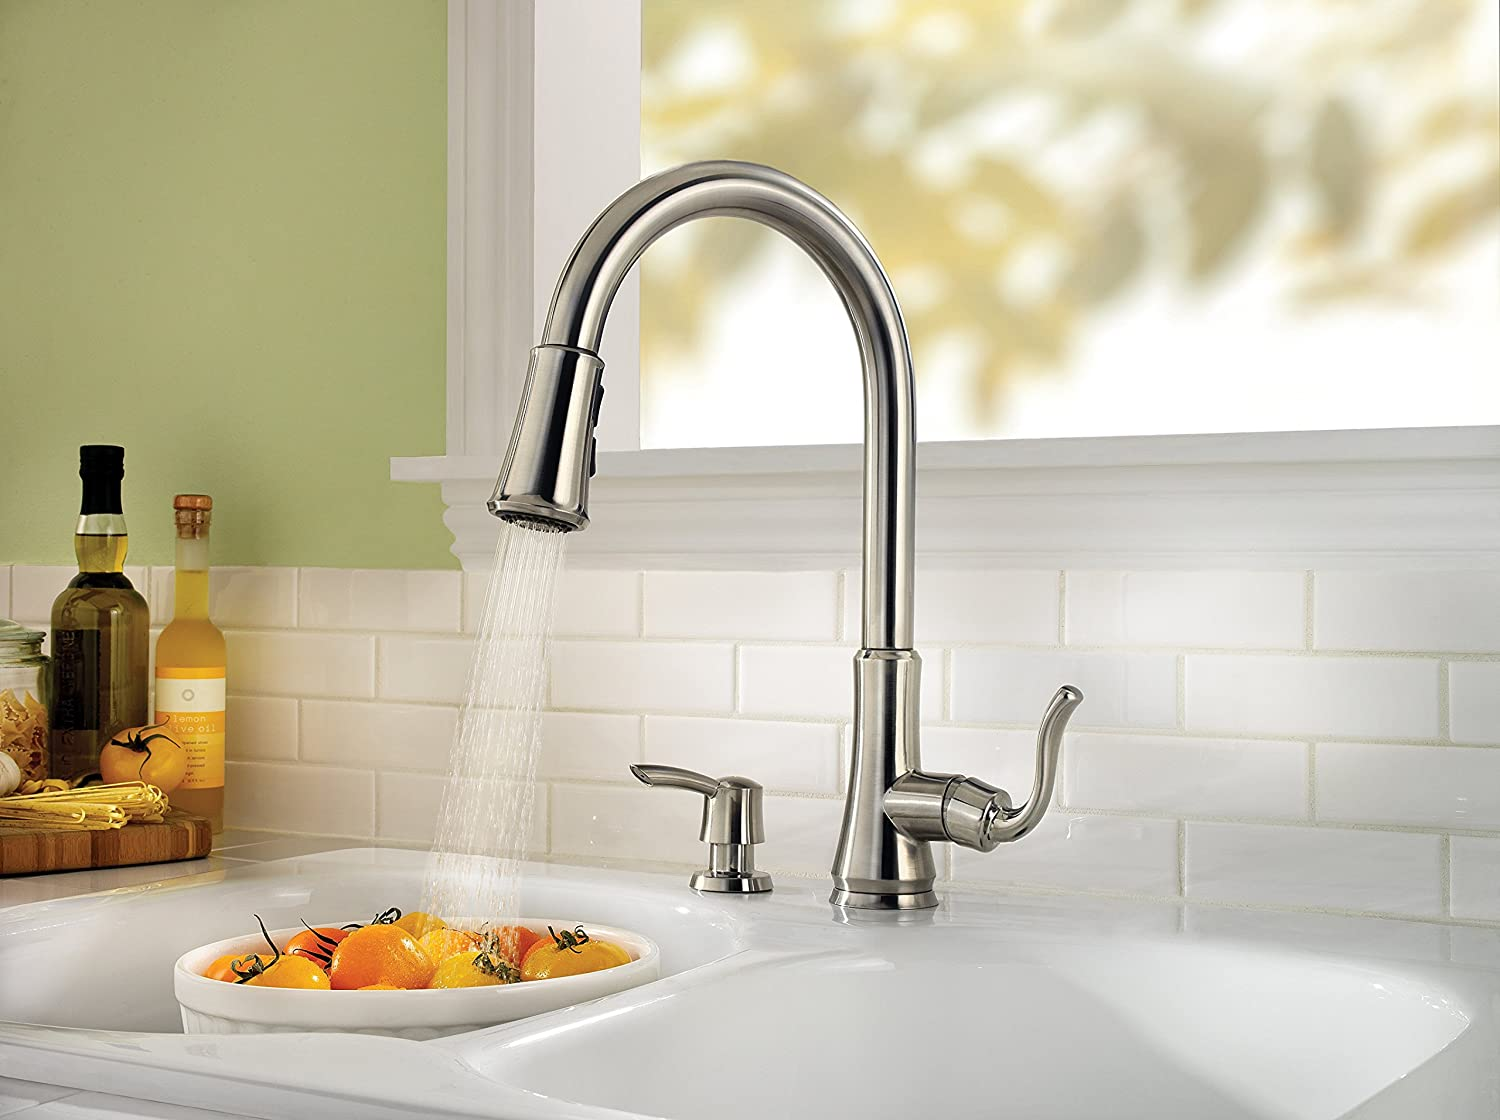 Pfister Cagney 1-Handle Pull-Down Kitchen Faucet with Soap Dispenser,  Stainless Steel - Touch On Kitchen Sink Faucets - Amazon.com